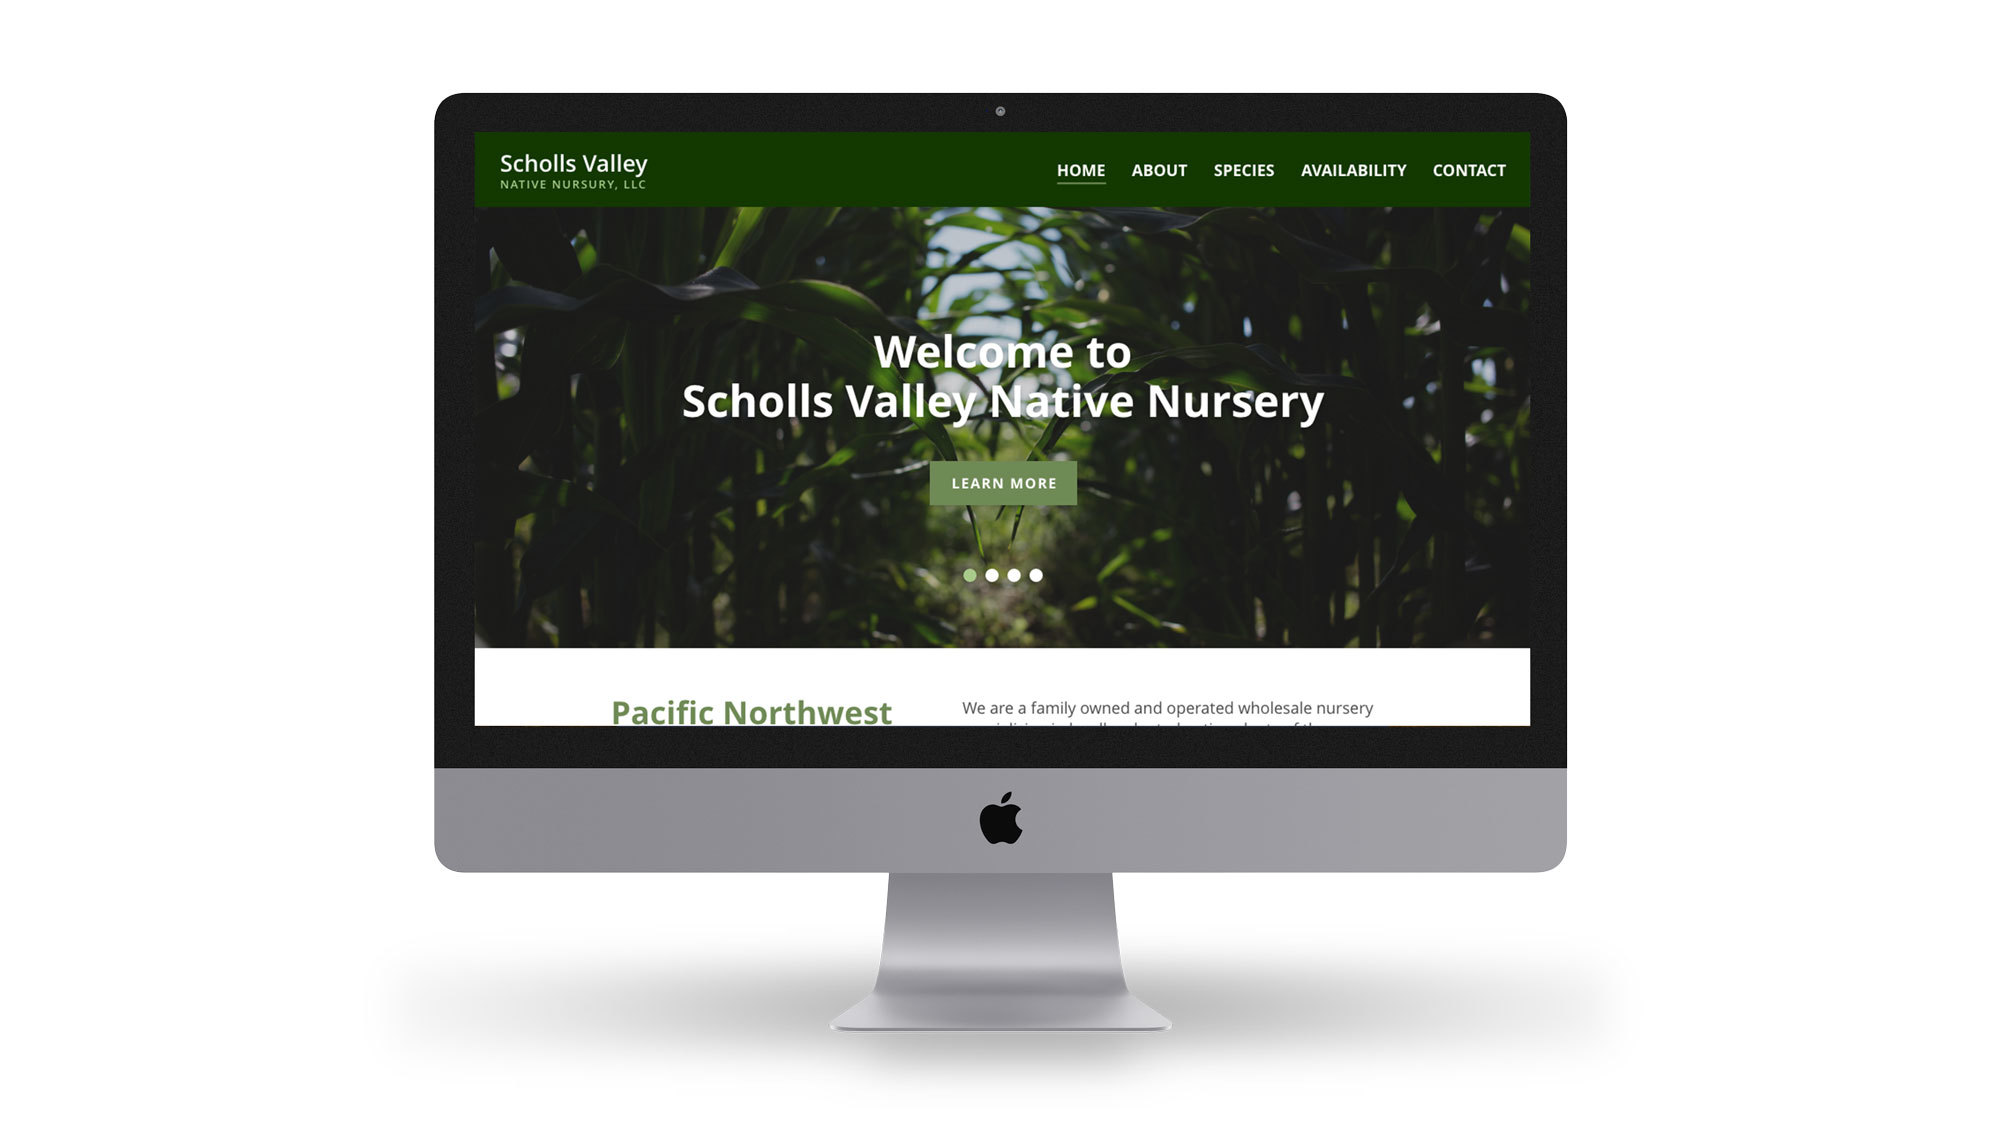 Scholls Valley Native Nursery Website new design